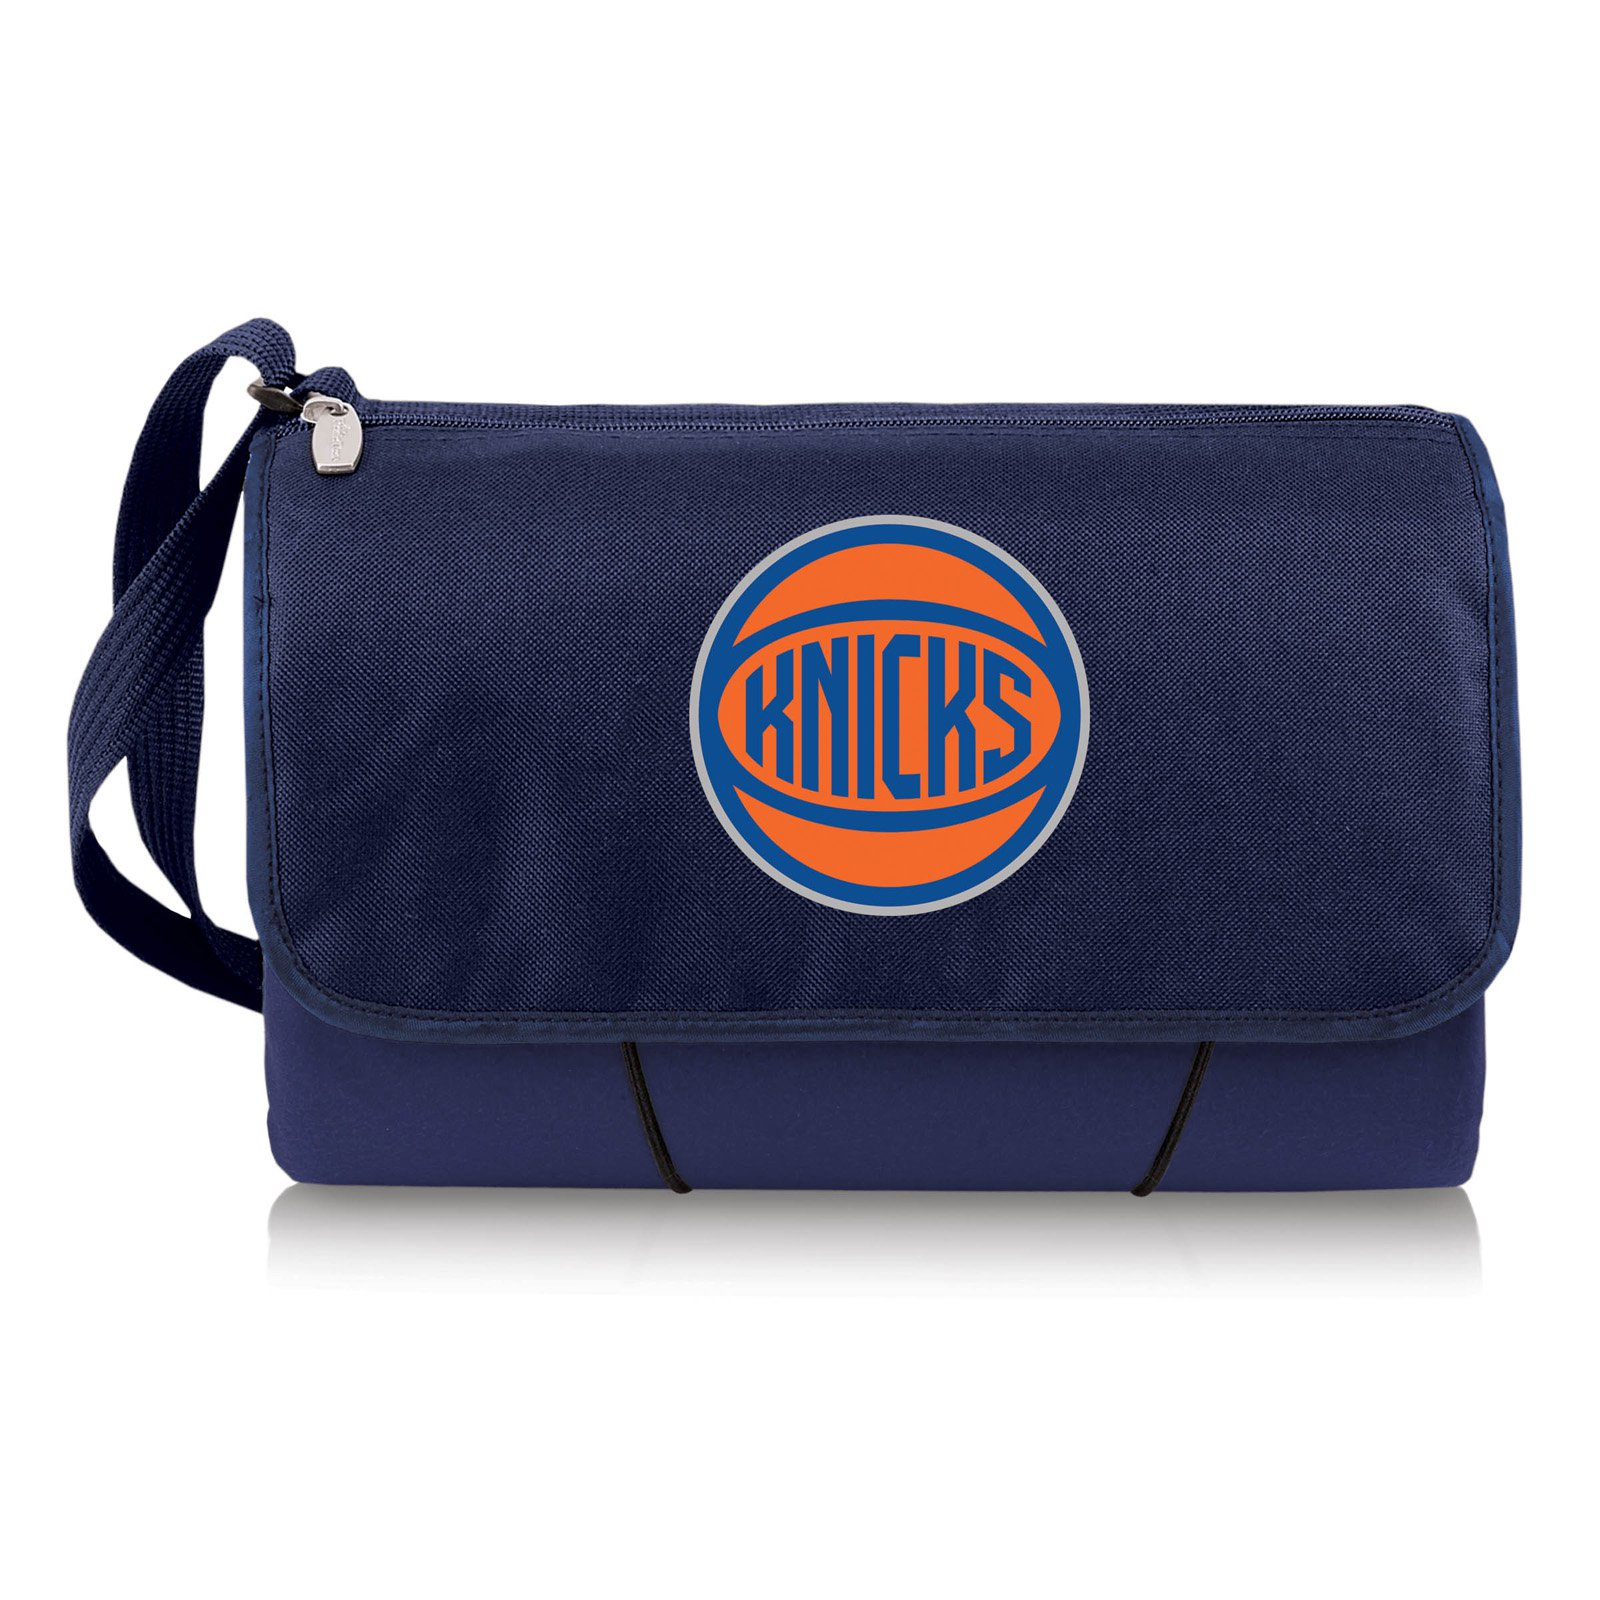 Picnic Time NBA Blanket Tote Outdoor Picnic Blanket